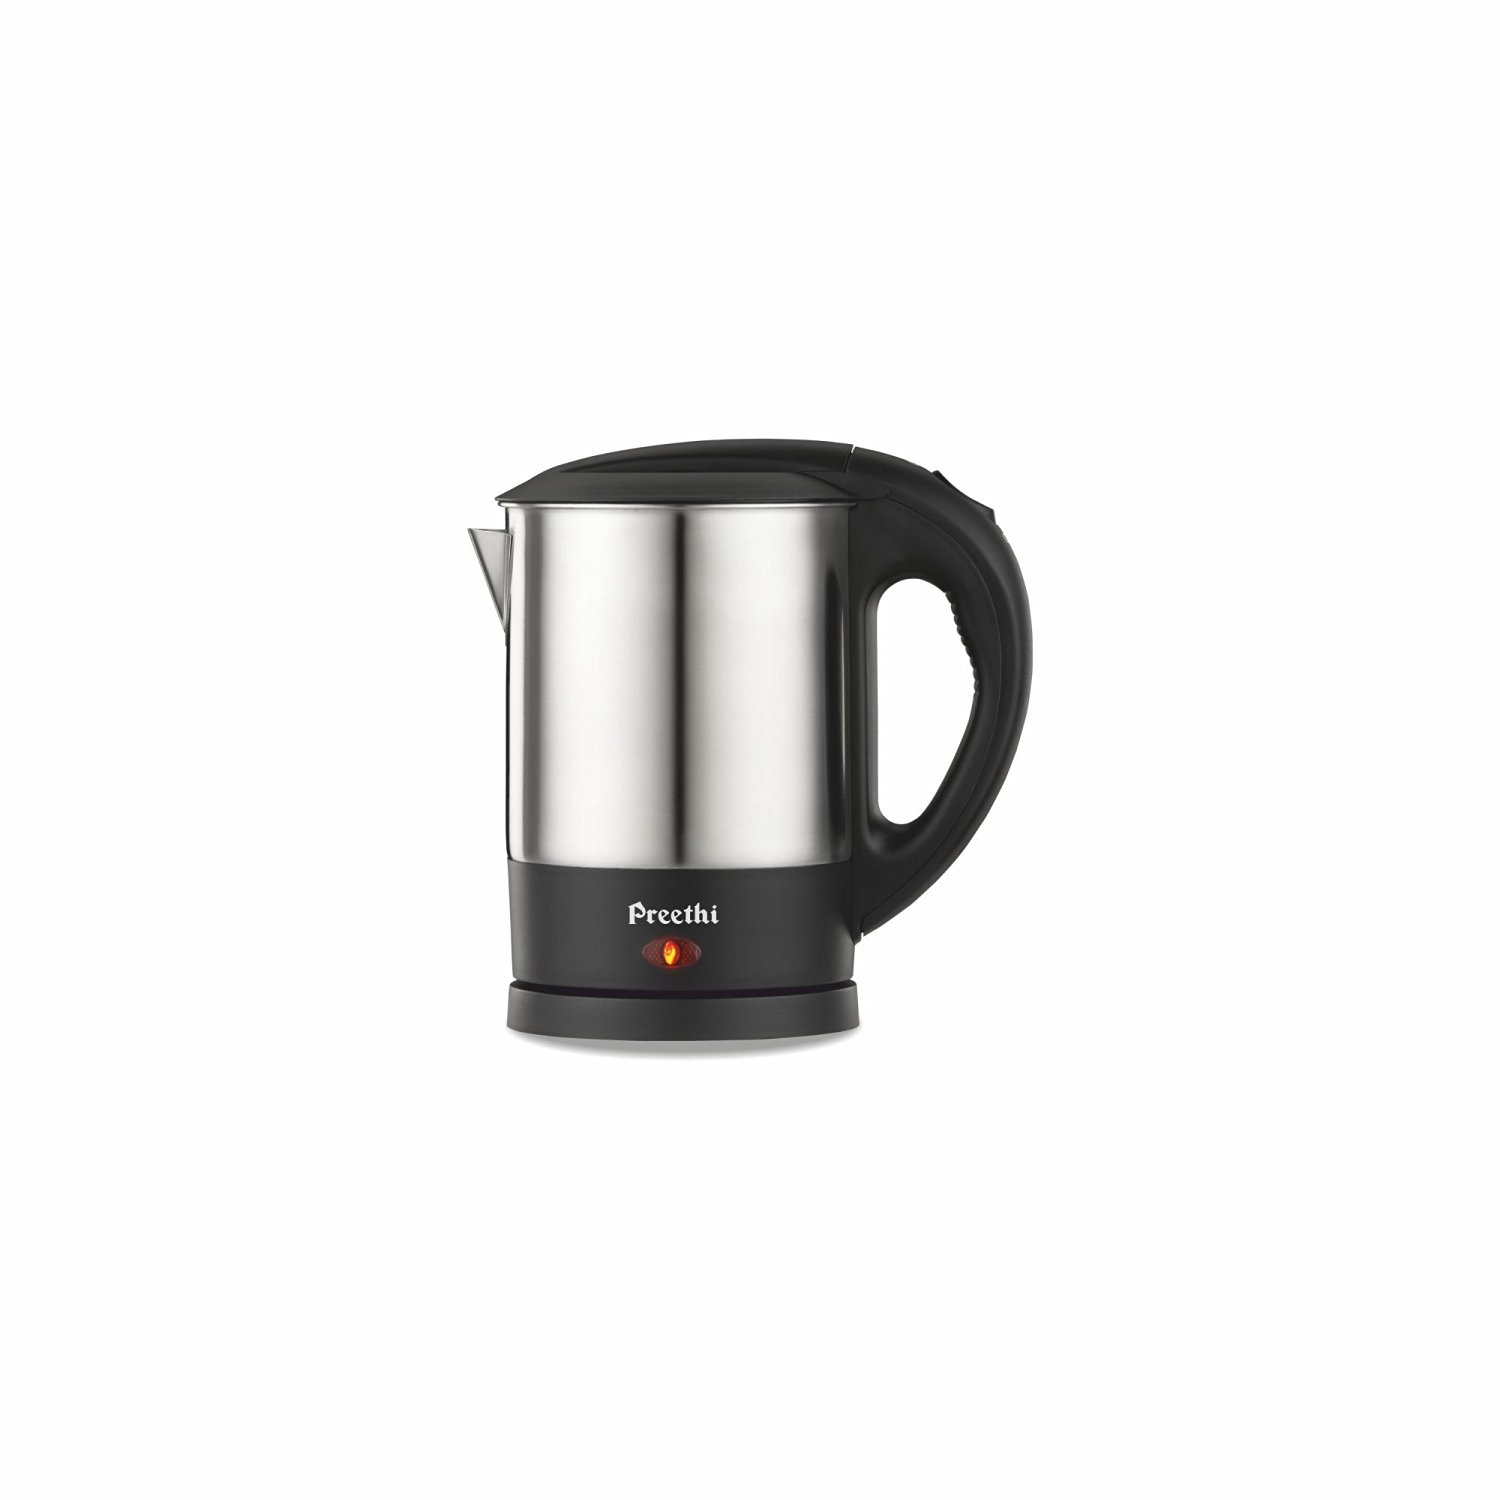 Preethi Armour Electric Kettle